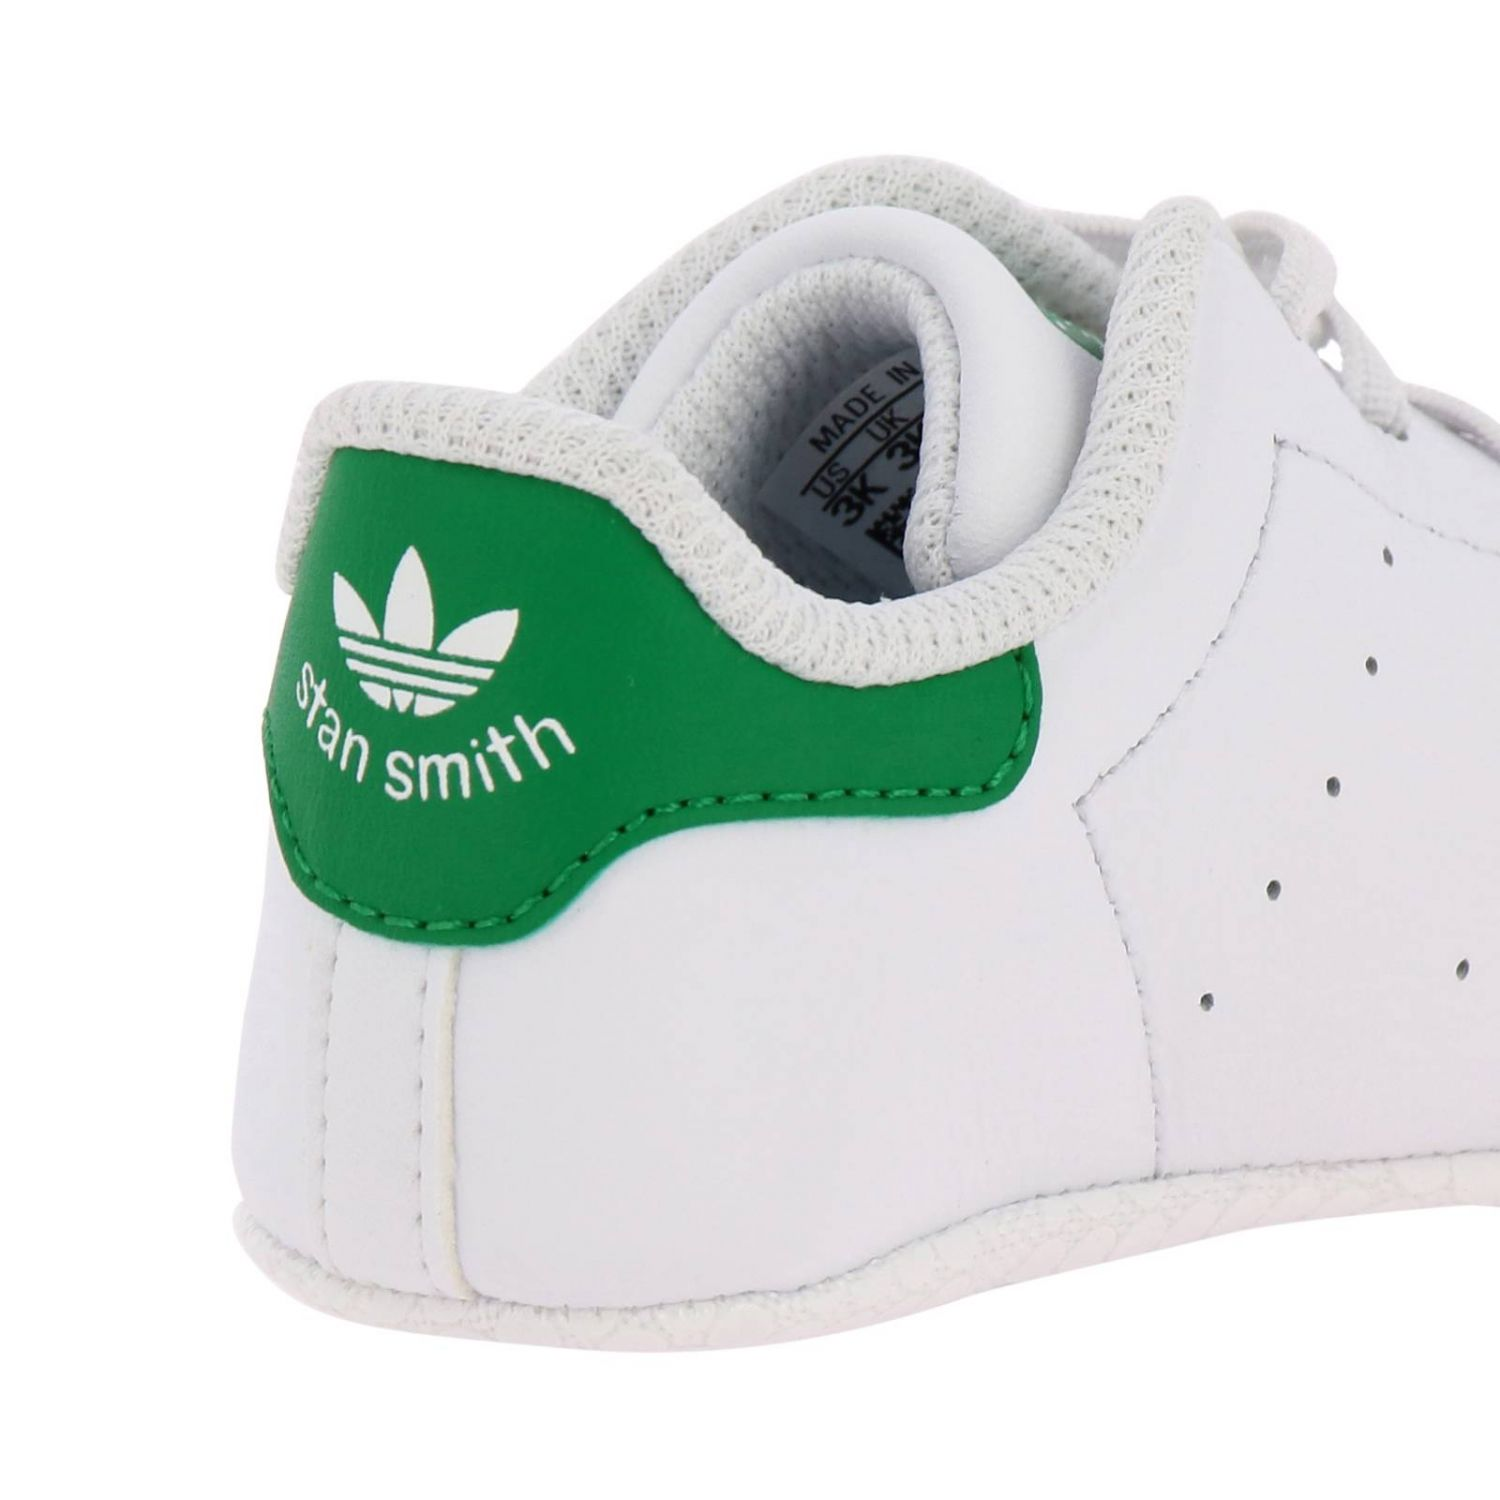 Shoes Adidas Originals: Stan Smith Crib Adidas Originals Sneakers in leather with contrasting heel white 4